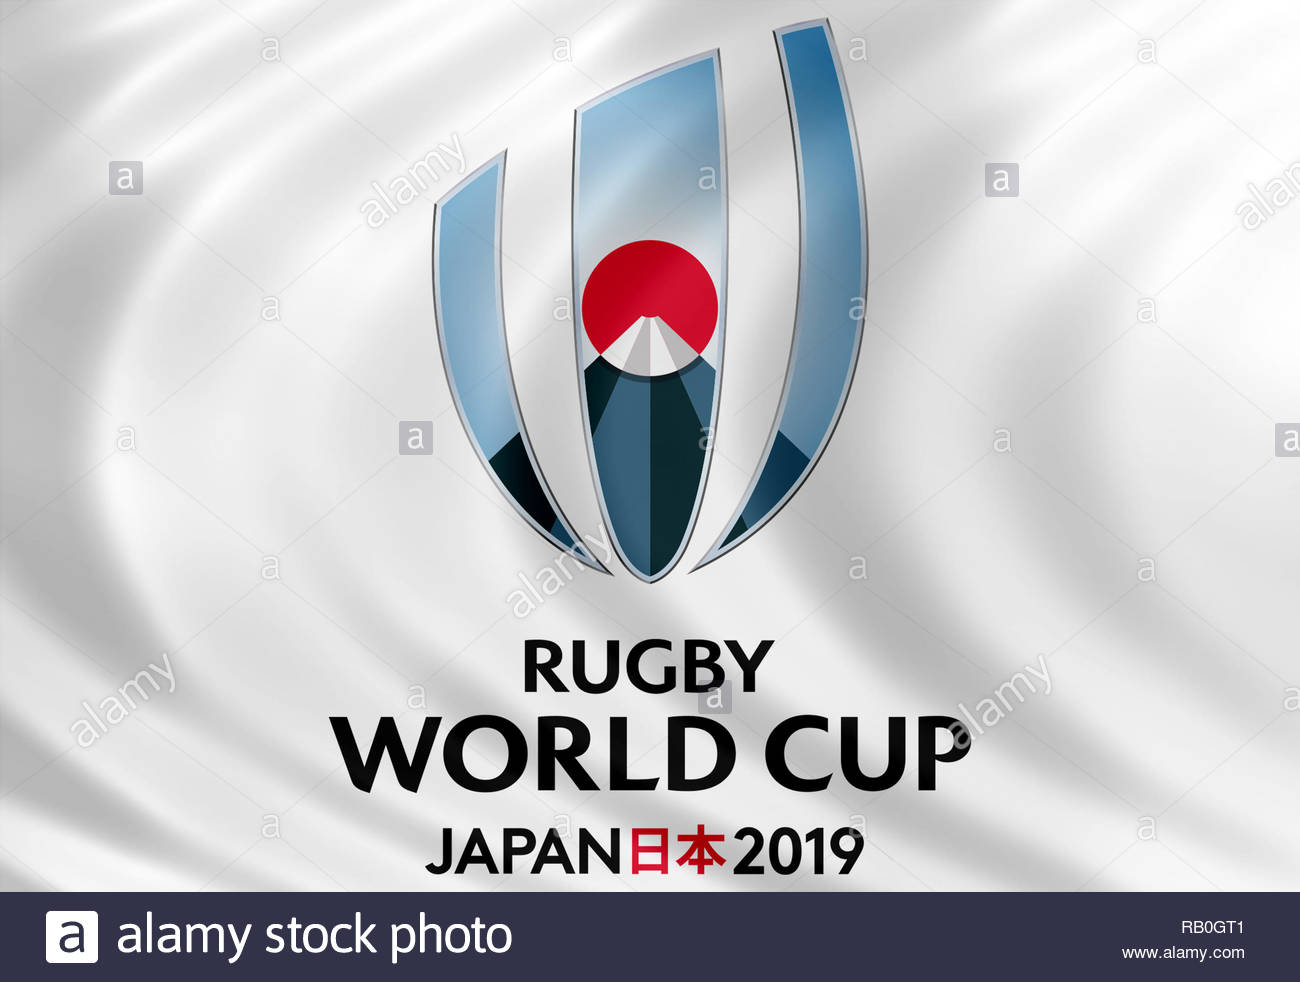 Rugby World Cup Japan logo - Stock Image